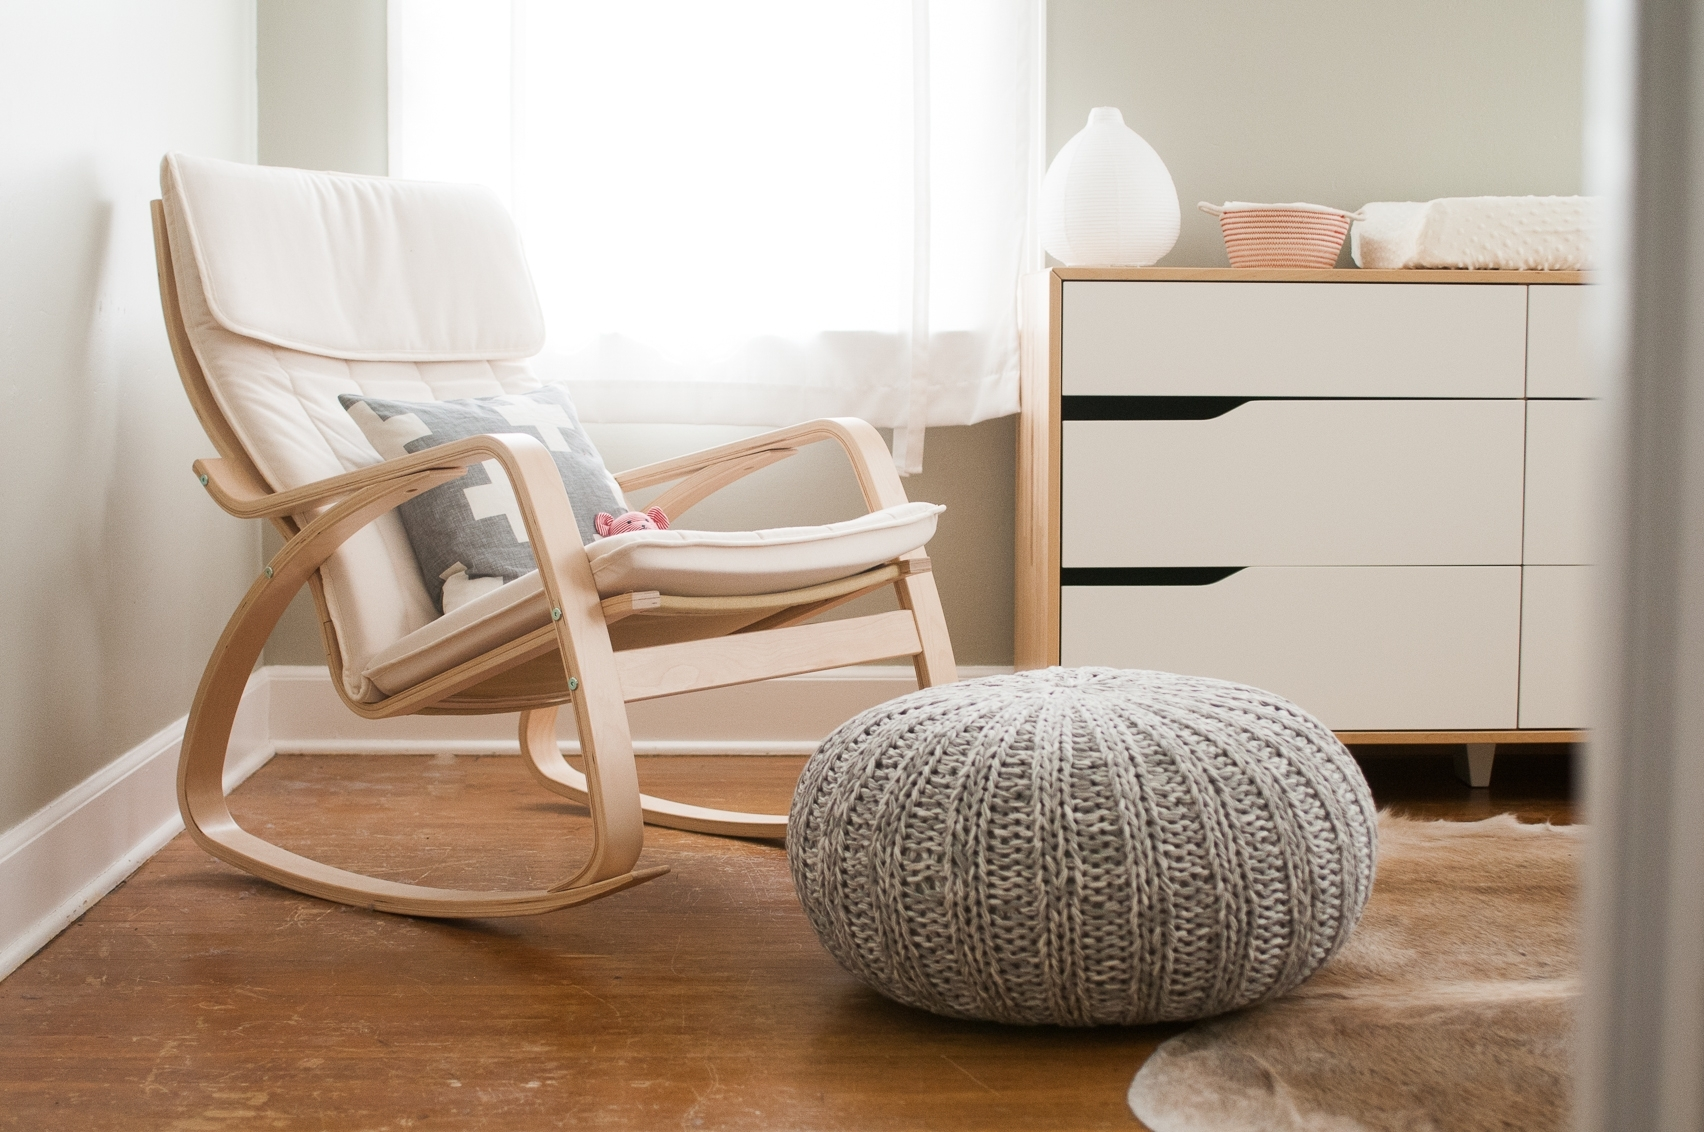 Inspiration about Modern Rocking Chair For Nursery | Homesfeed Intended For Rocking Chairs For Nursery (#15 of 15)